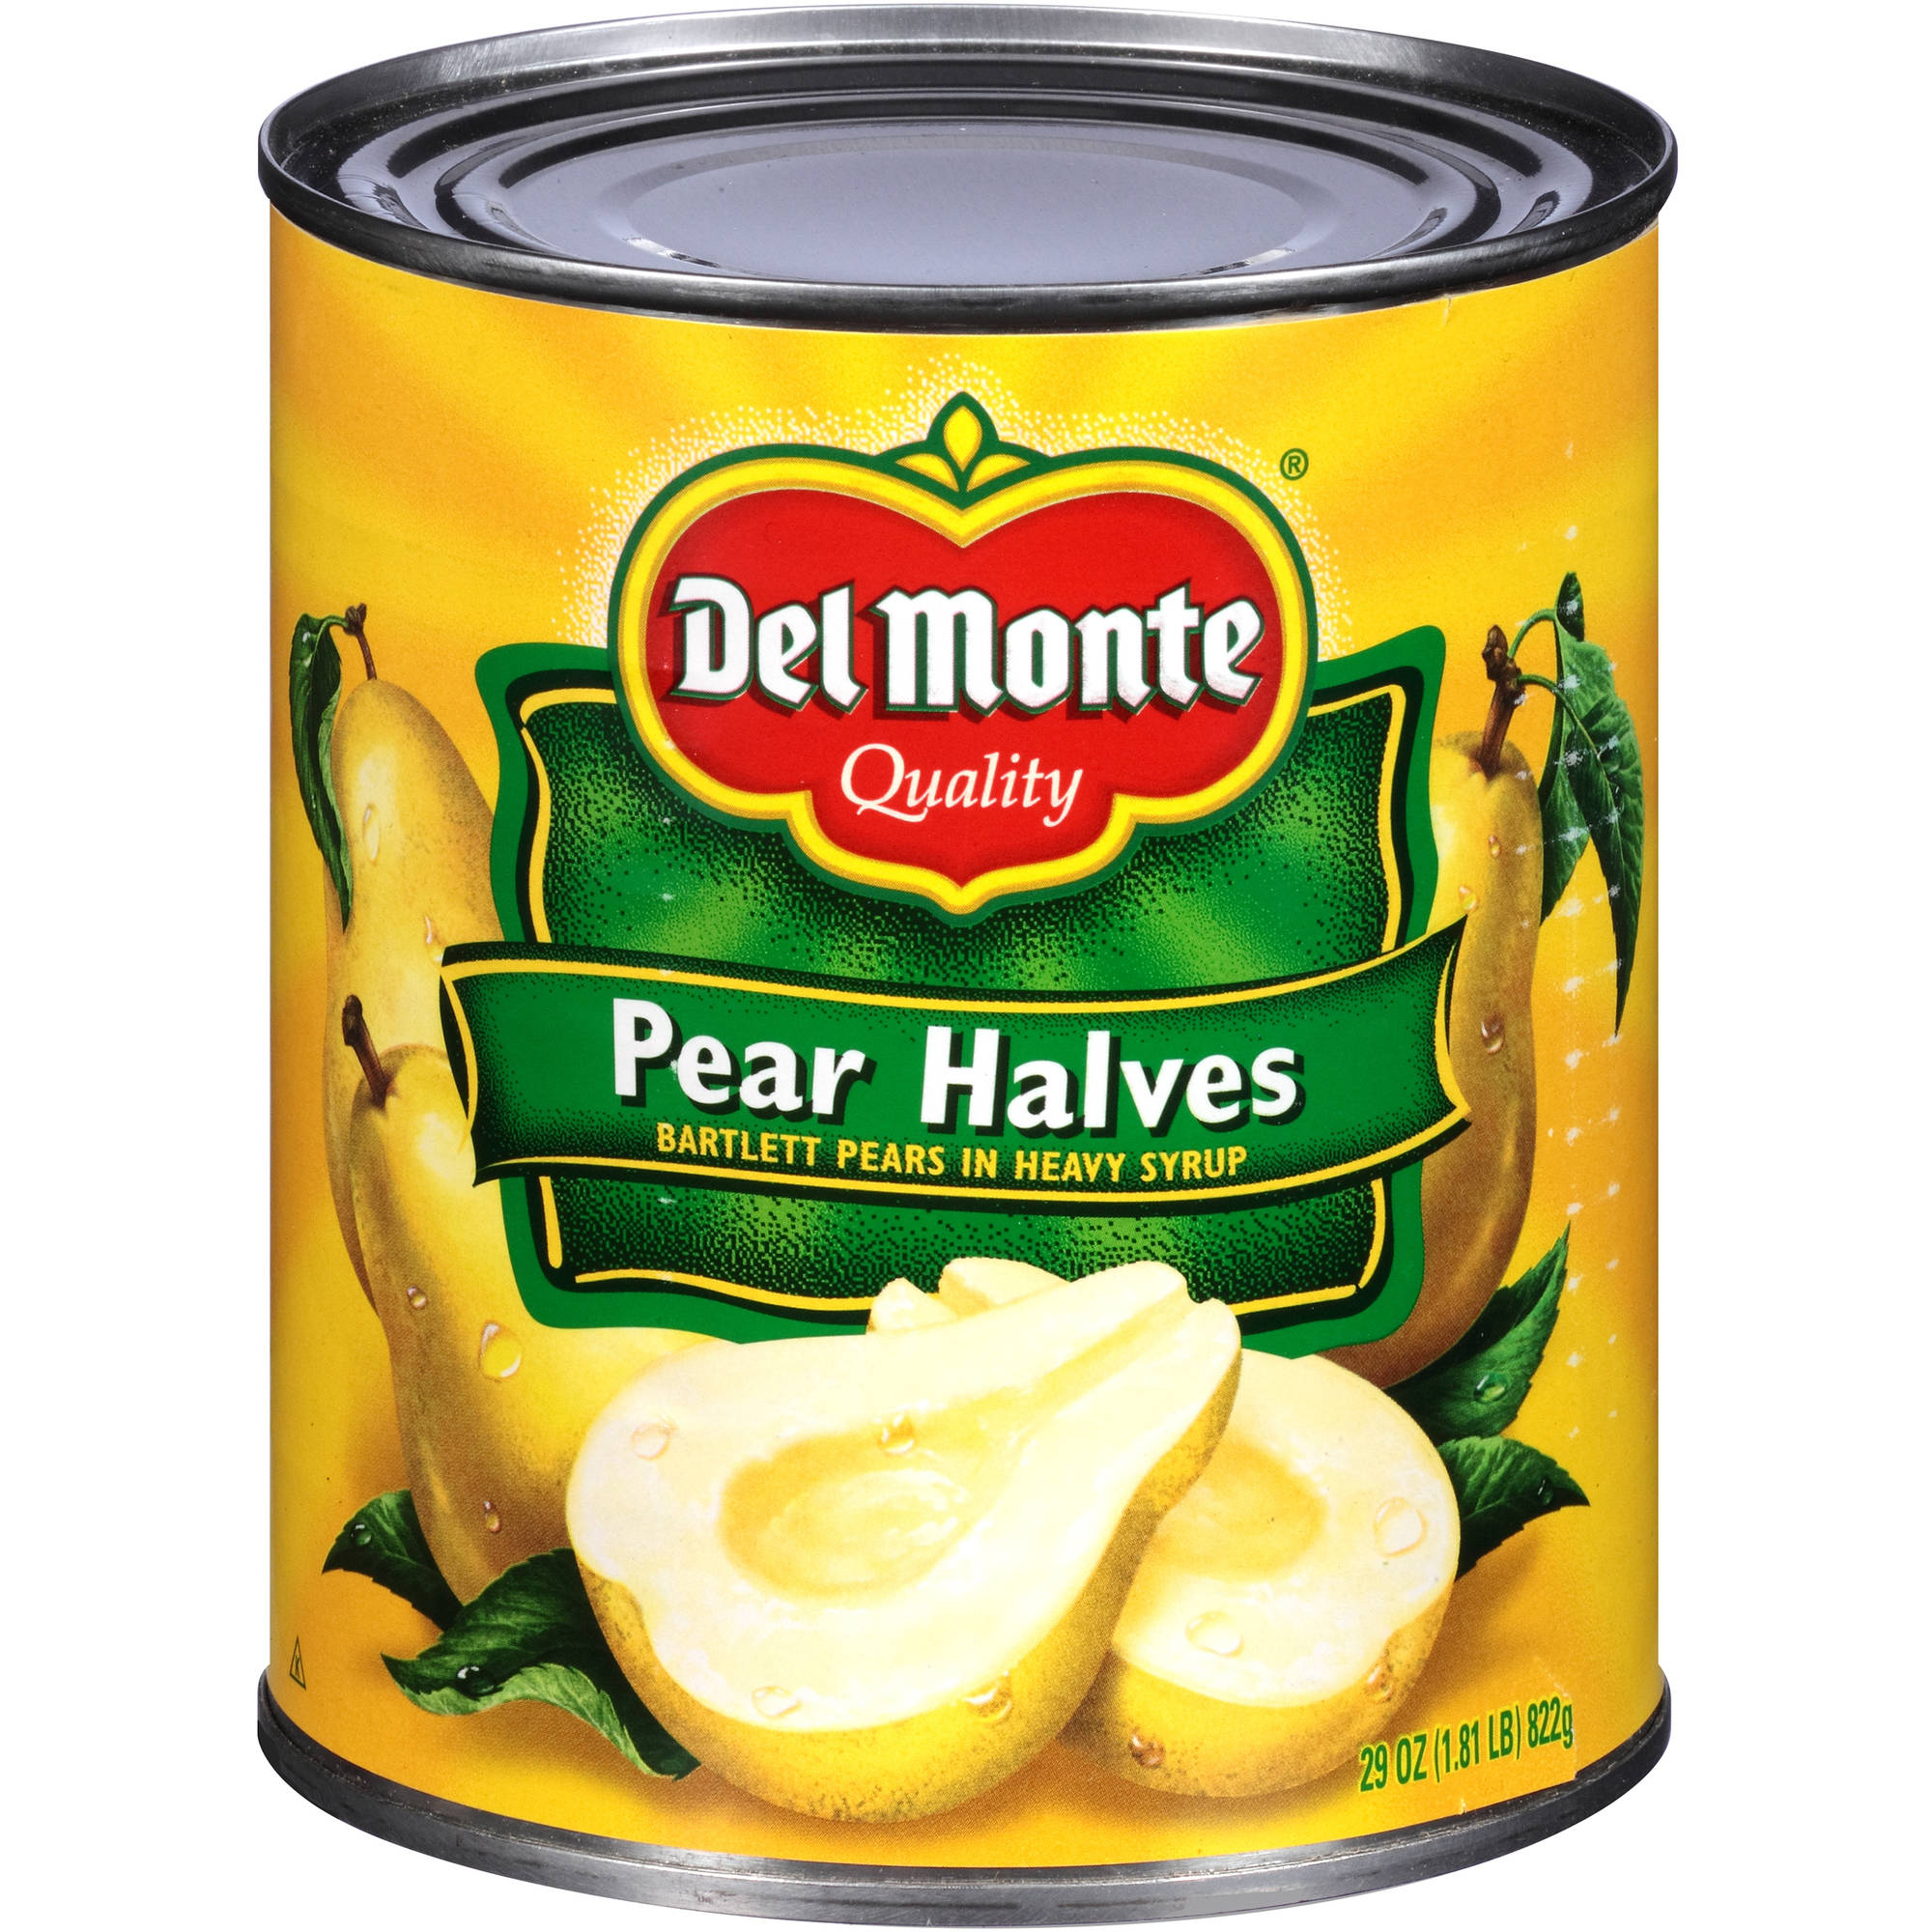 Del Monte: Bartlett In Heavy Syrup Pear Halves, 29 Oz